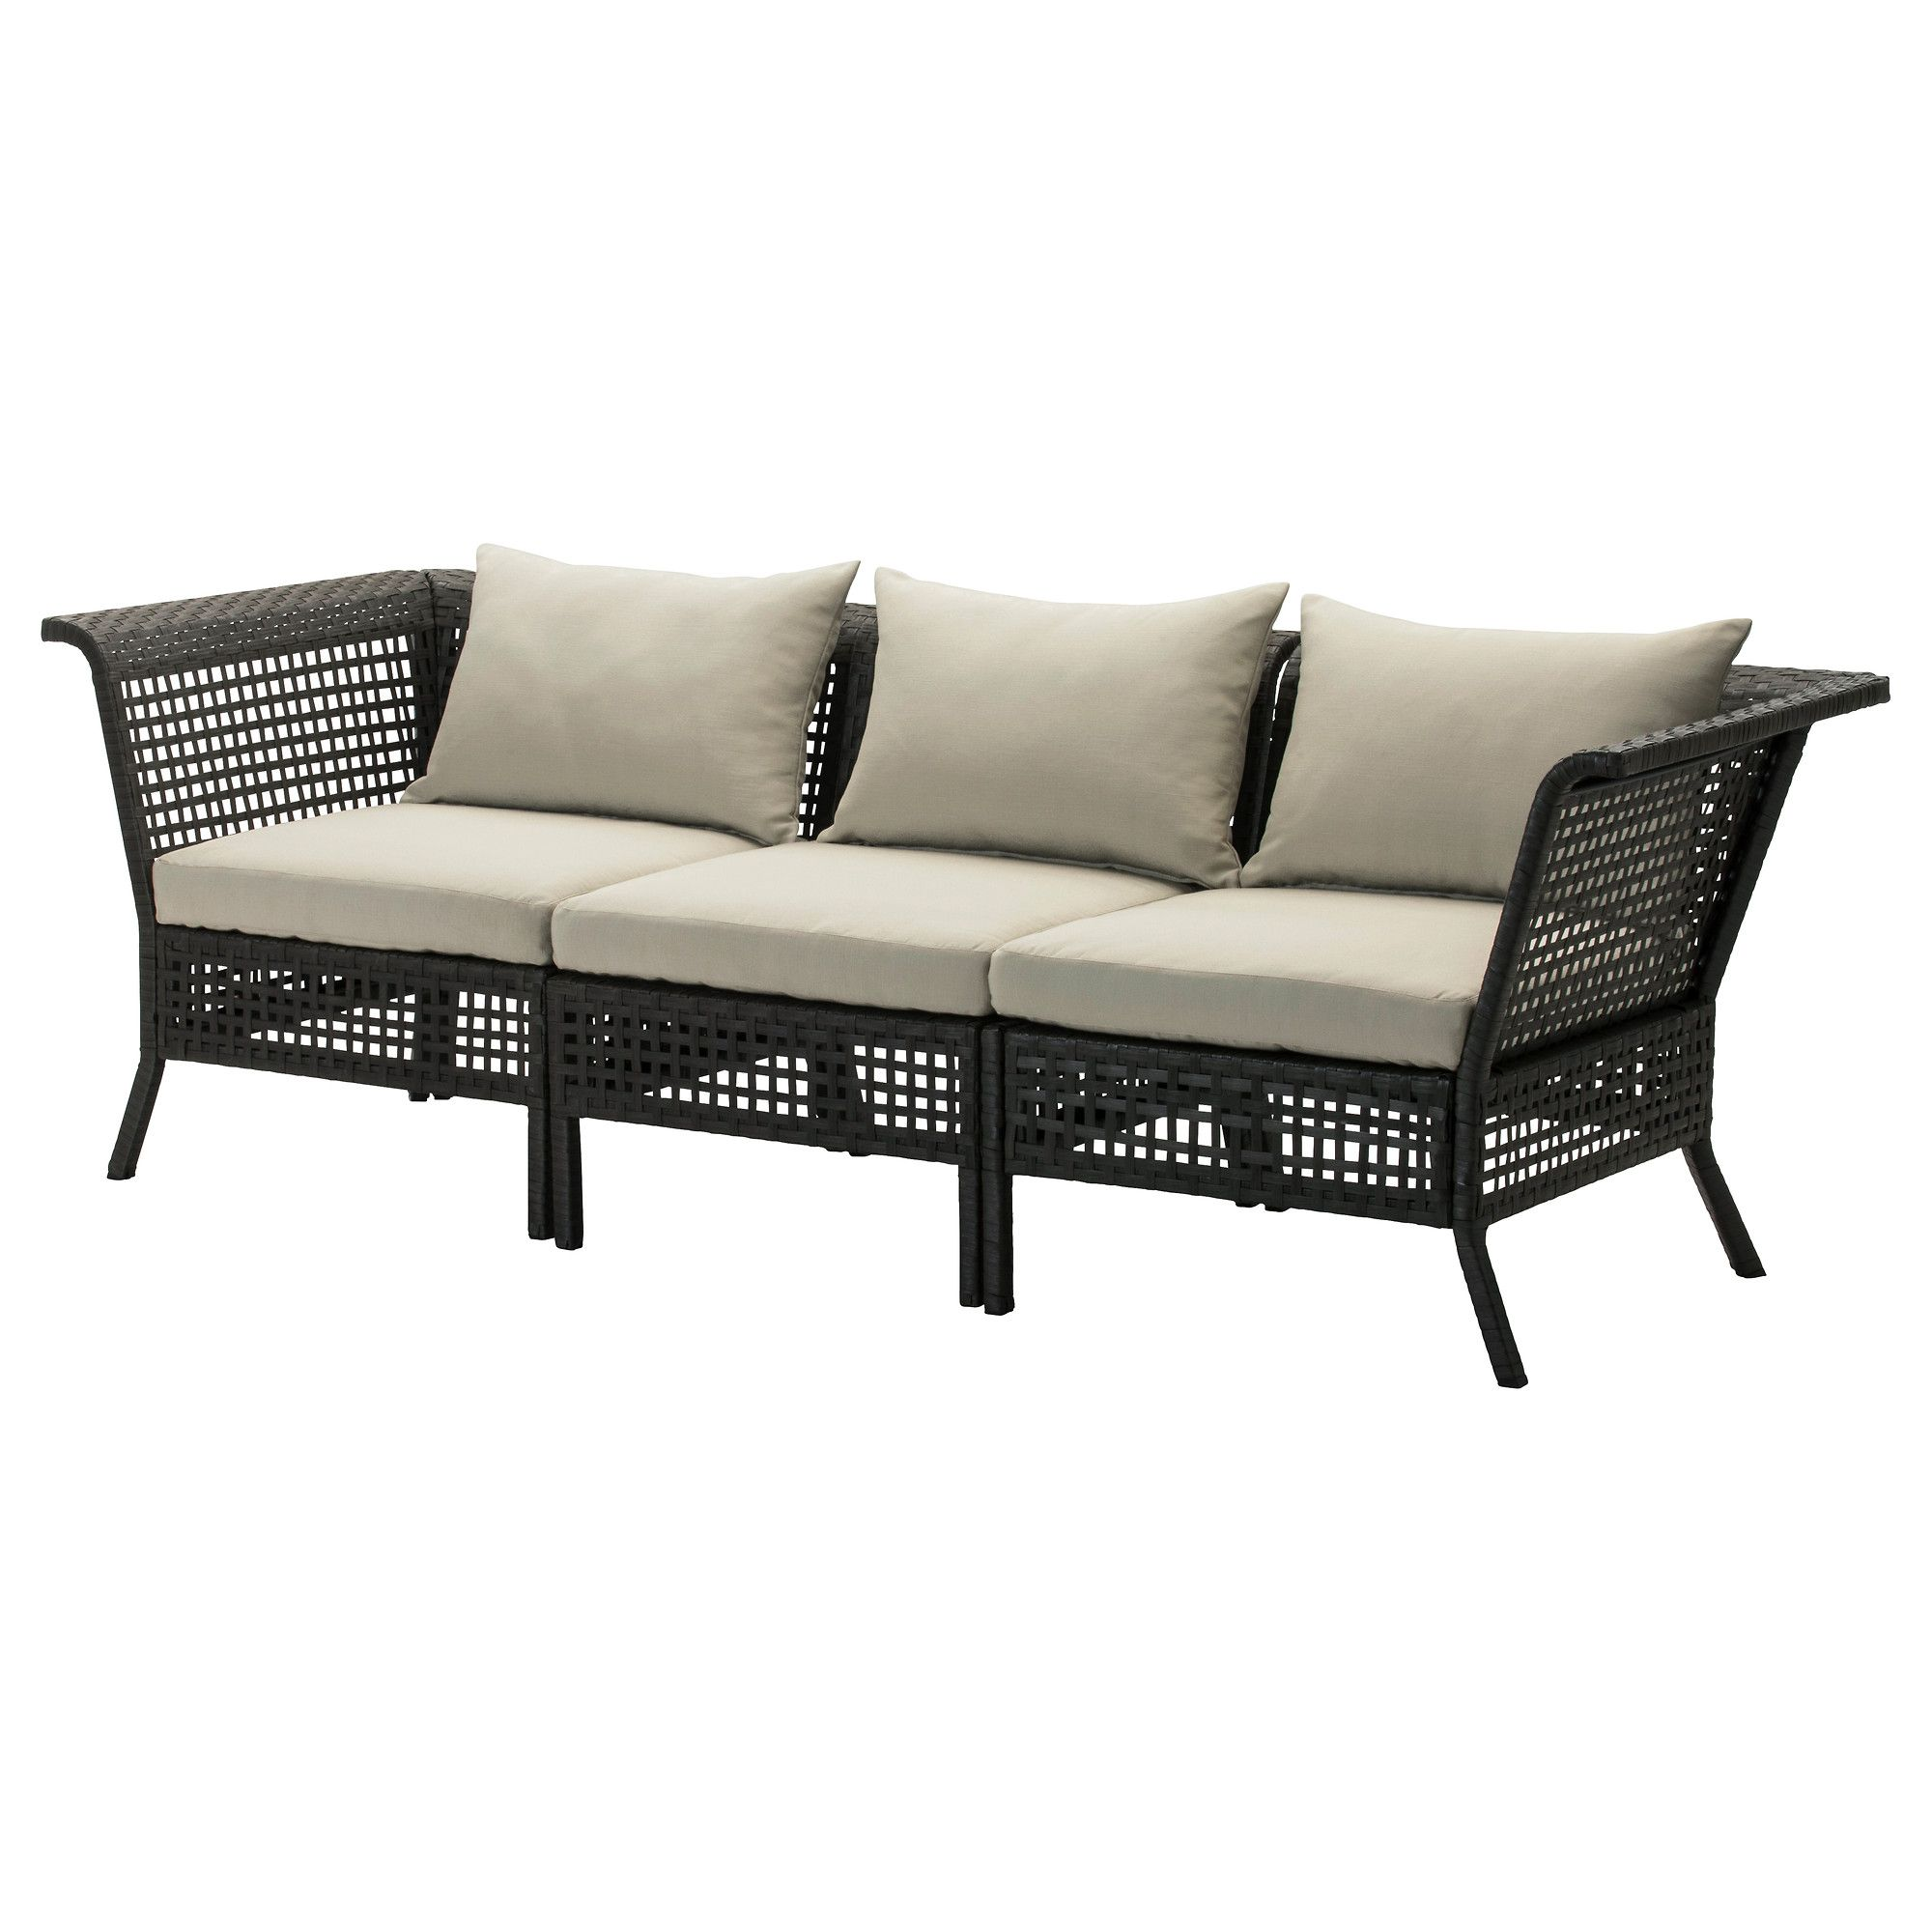 Furniture Home Goods Store Affordable Furnishings Outdoor Sofa Möbel Sofa Gartensofa